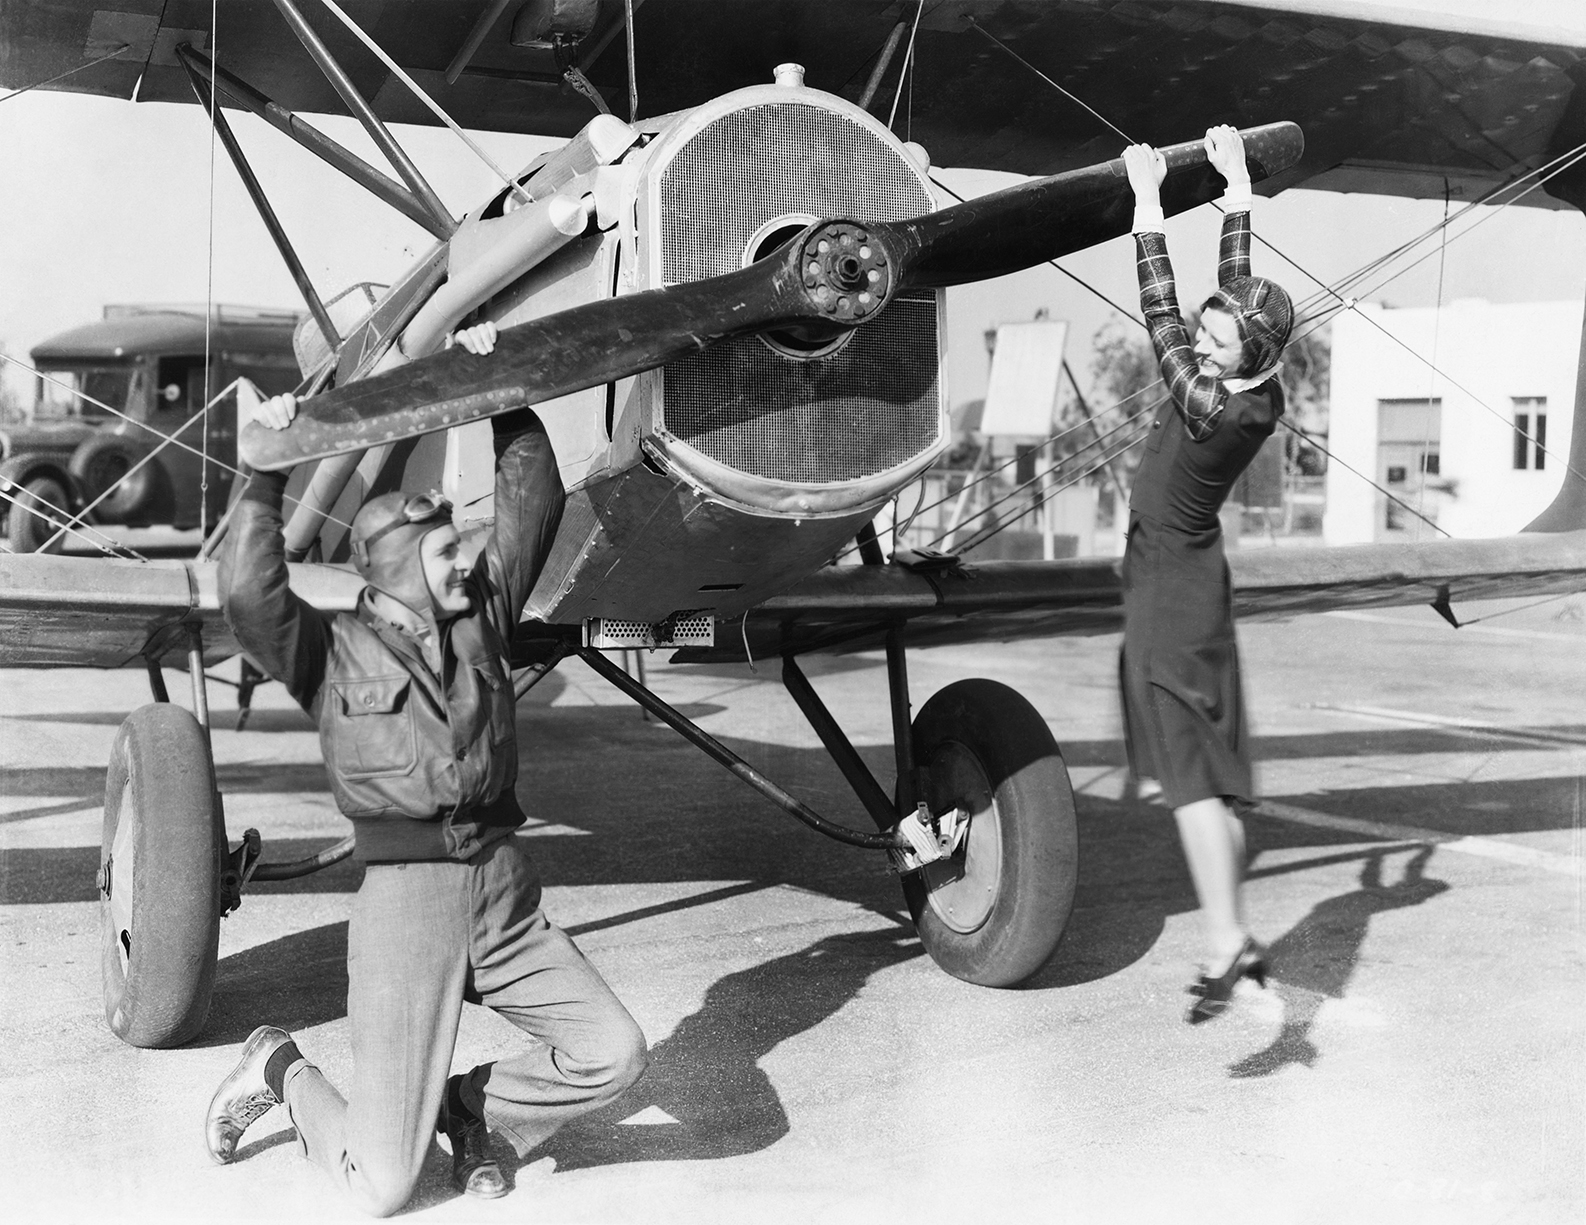 a man and a woman play with a plane propeller